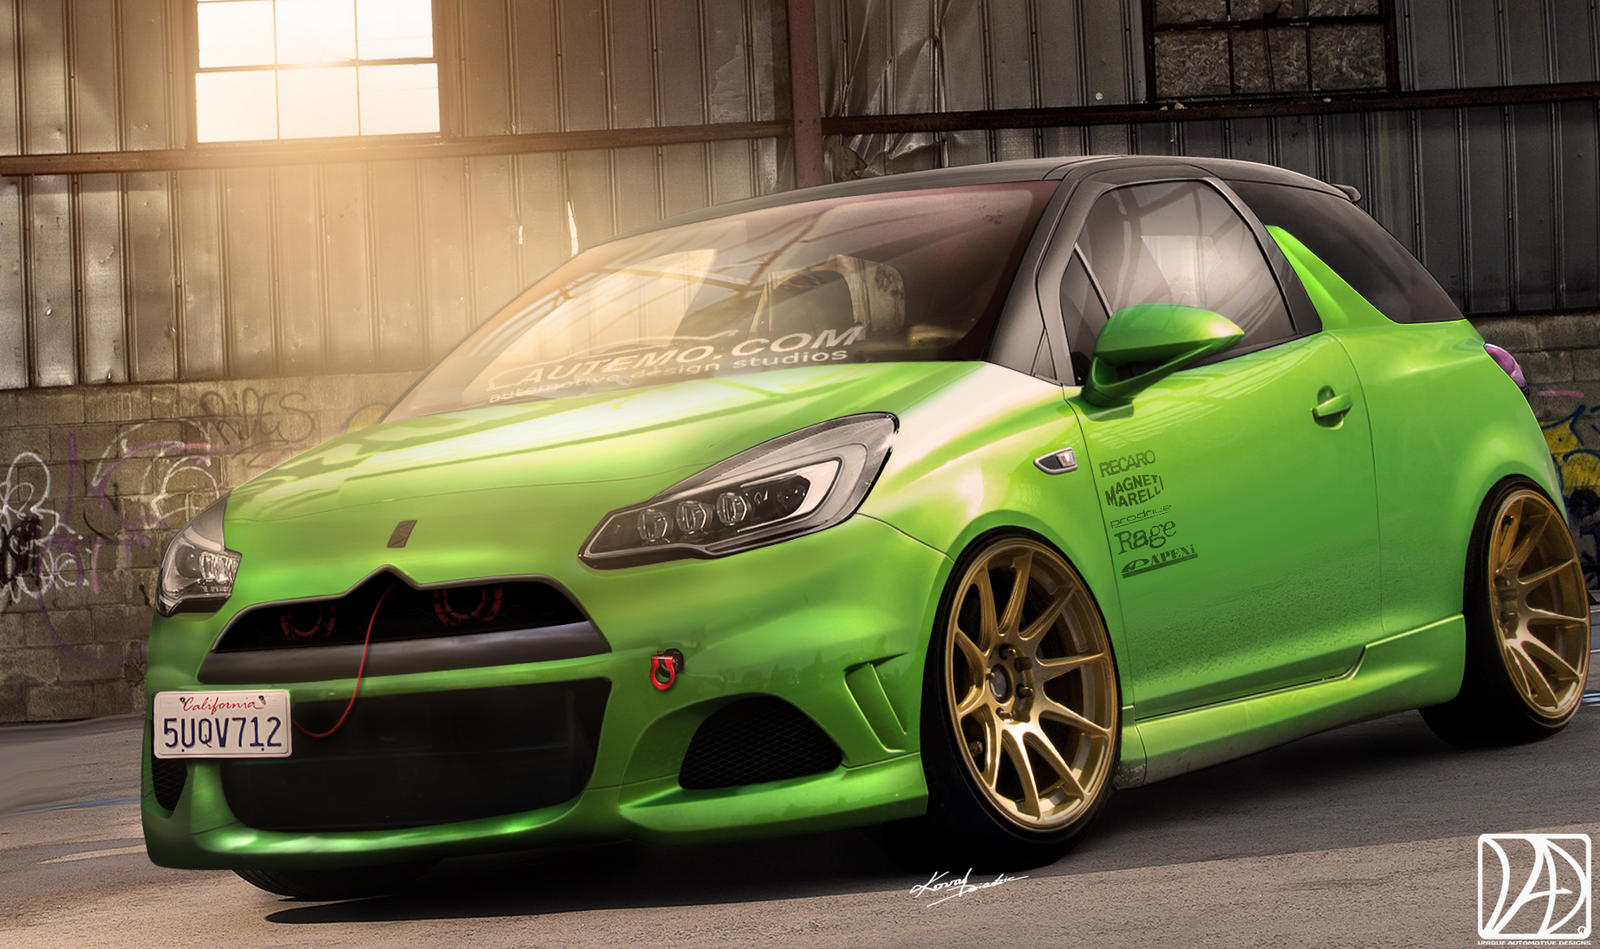 citroen ds3 virtual tuning by uad team on deviantart